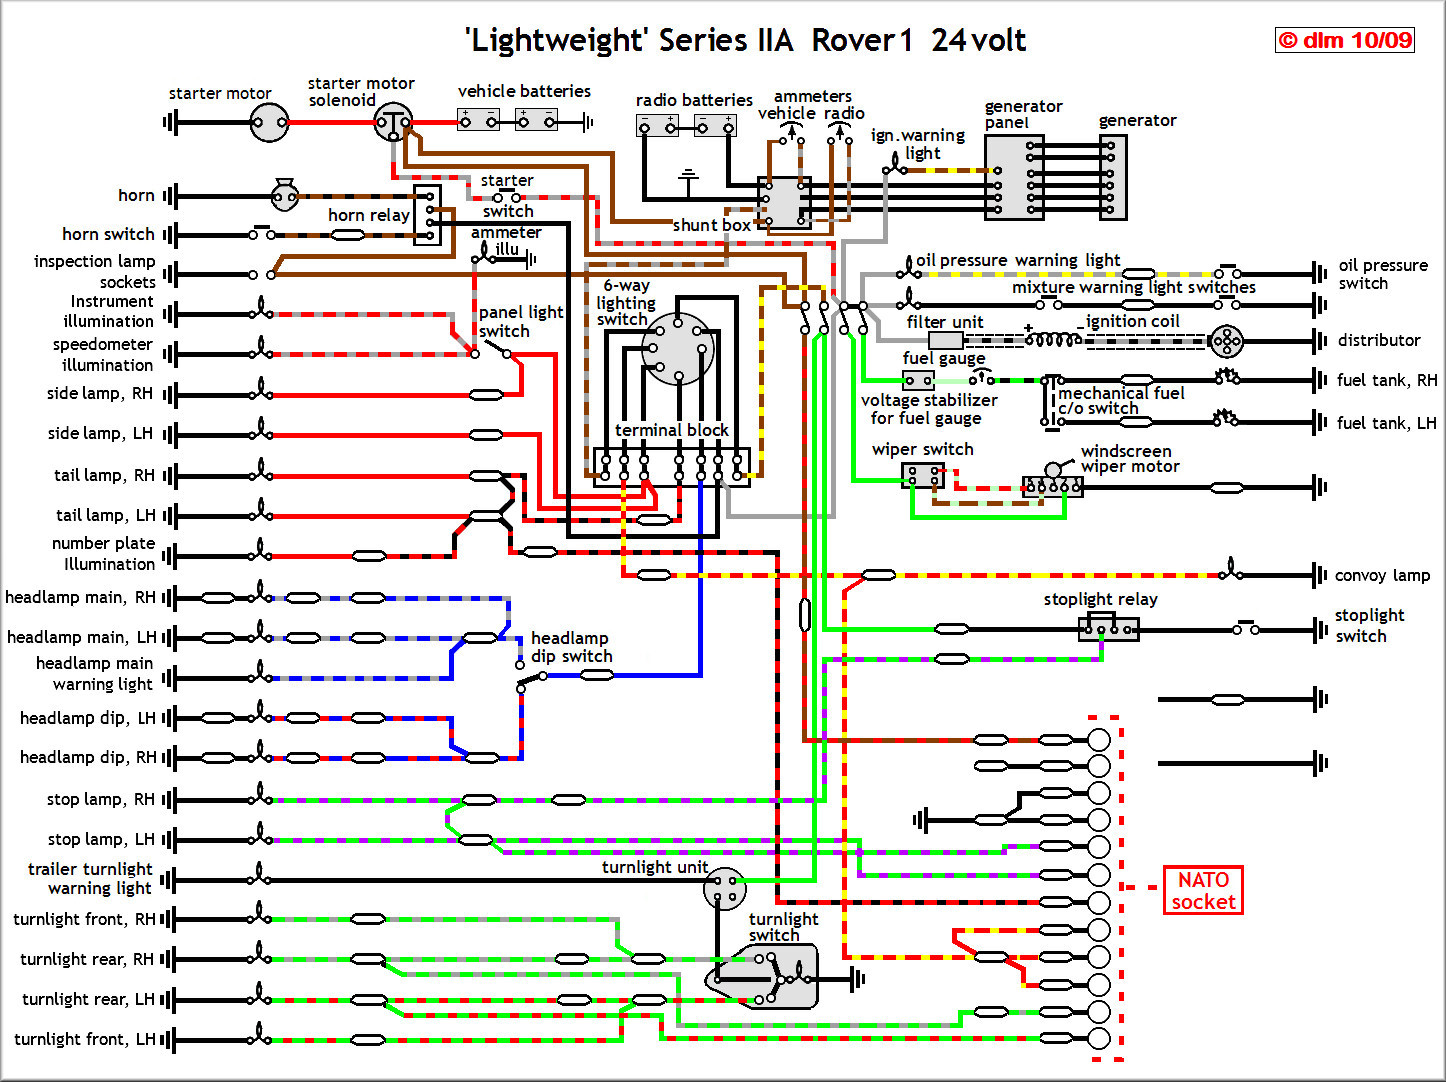 rover1 24Av land rover lightweight Series Speaker Wiring Diagram at cos-gaming.co